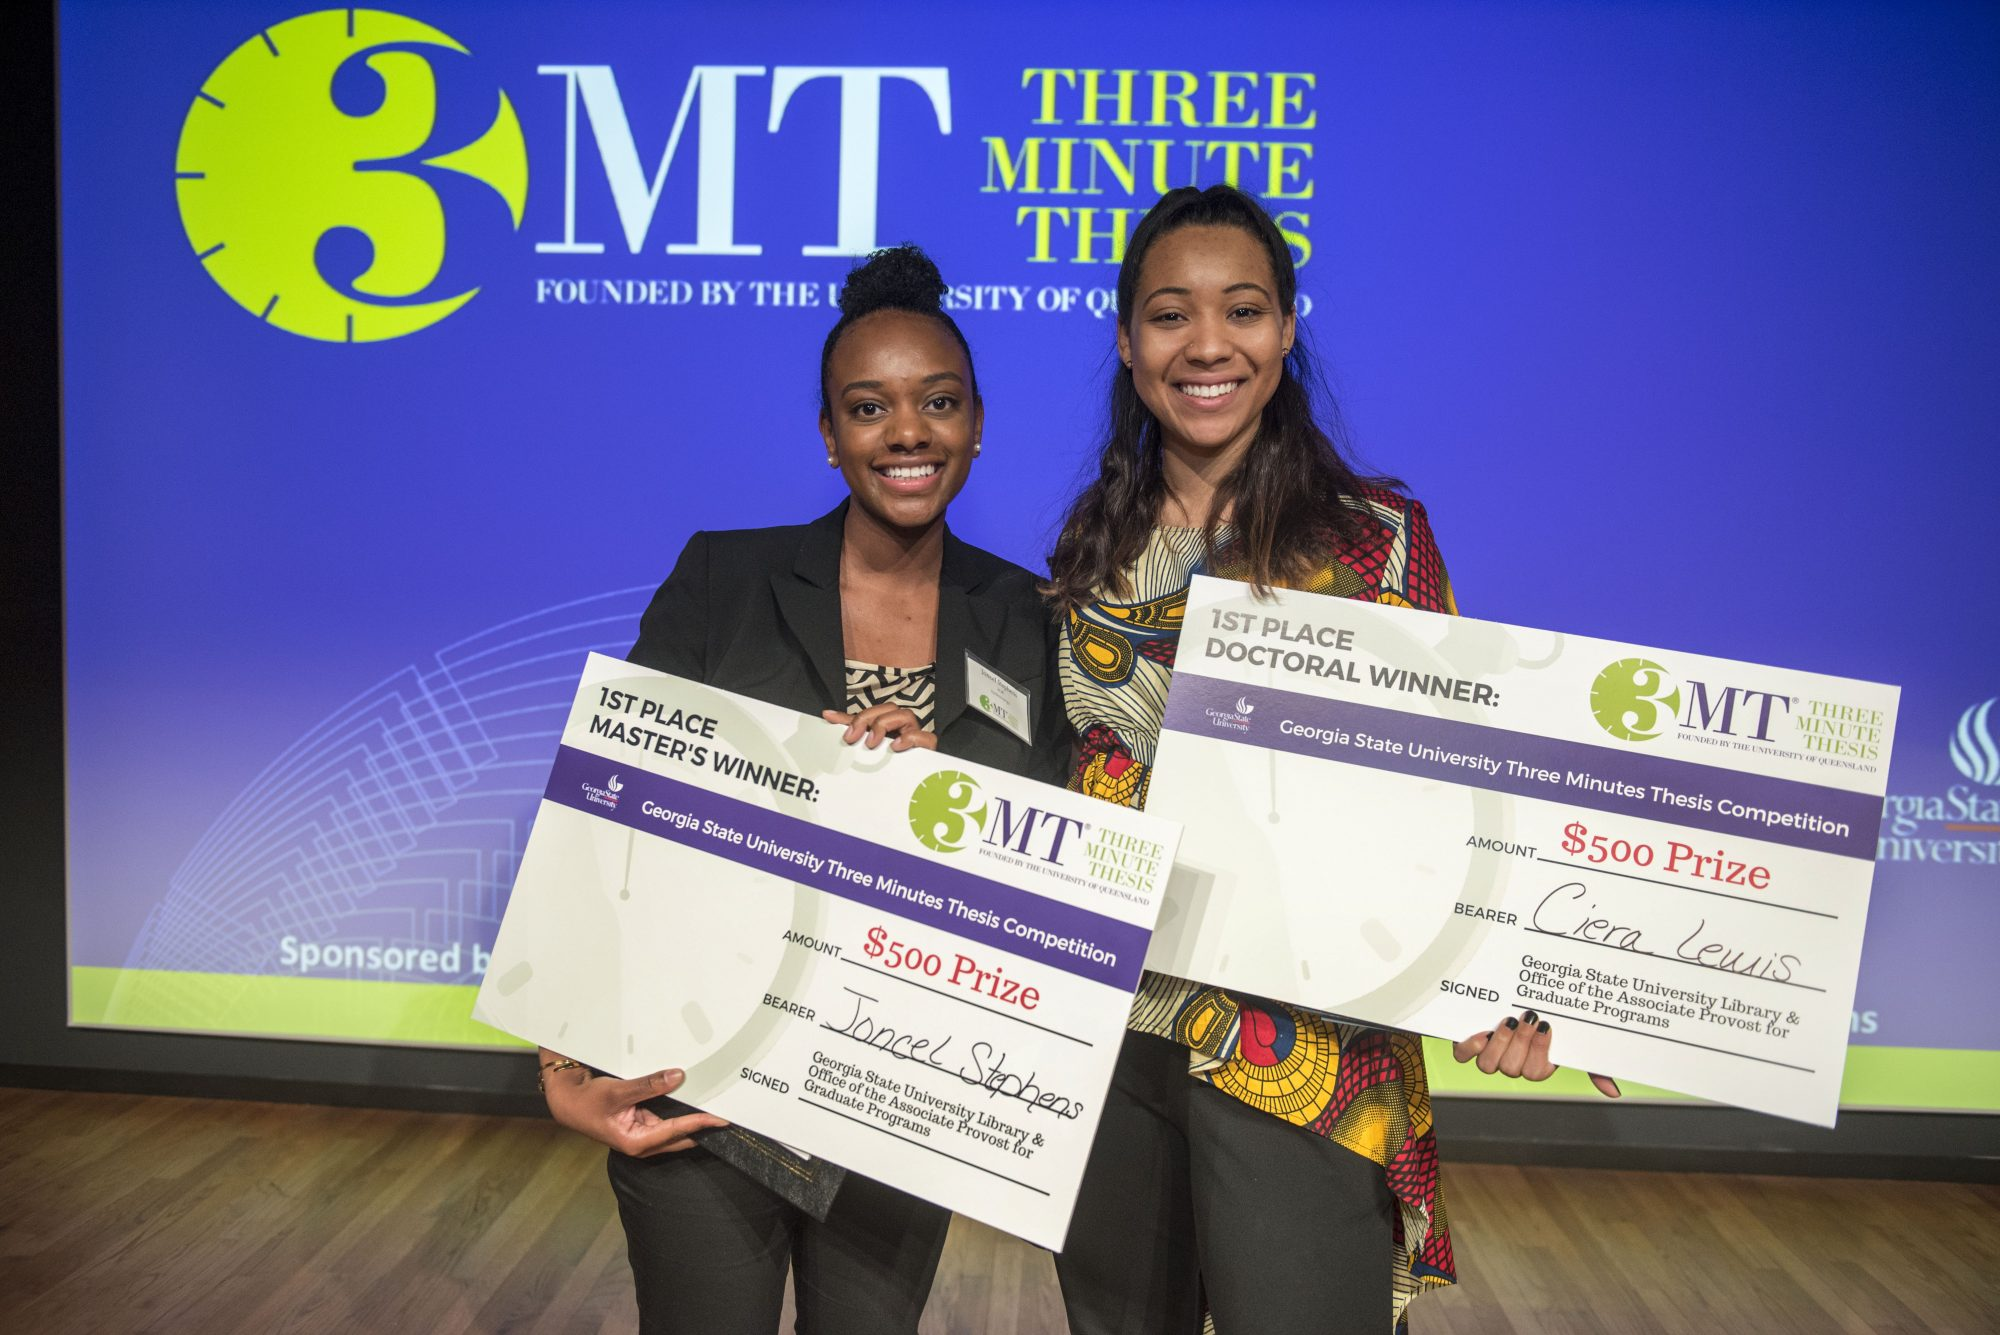 2018 First Place 3MT Winners on stage with Awards